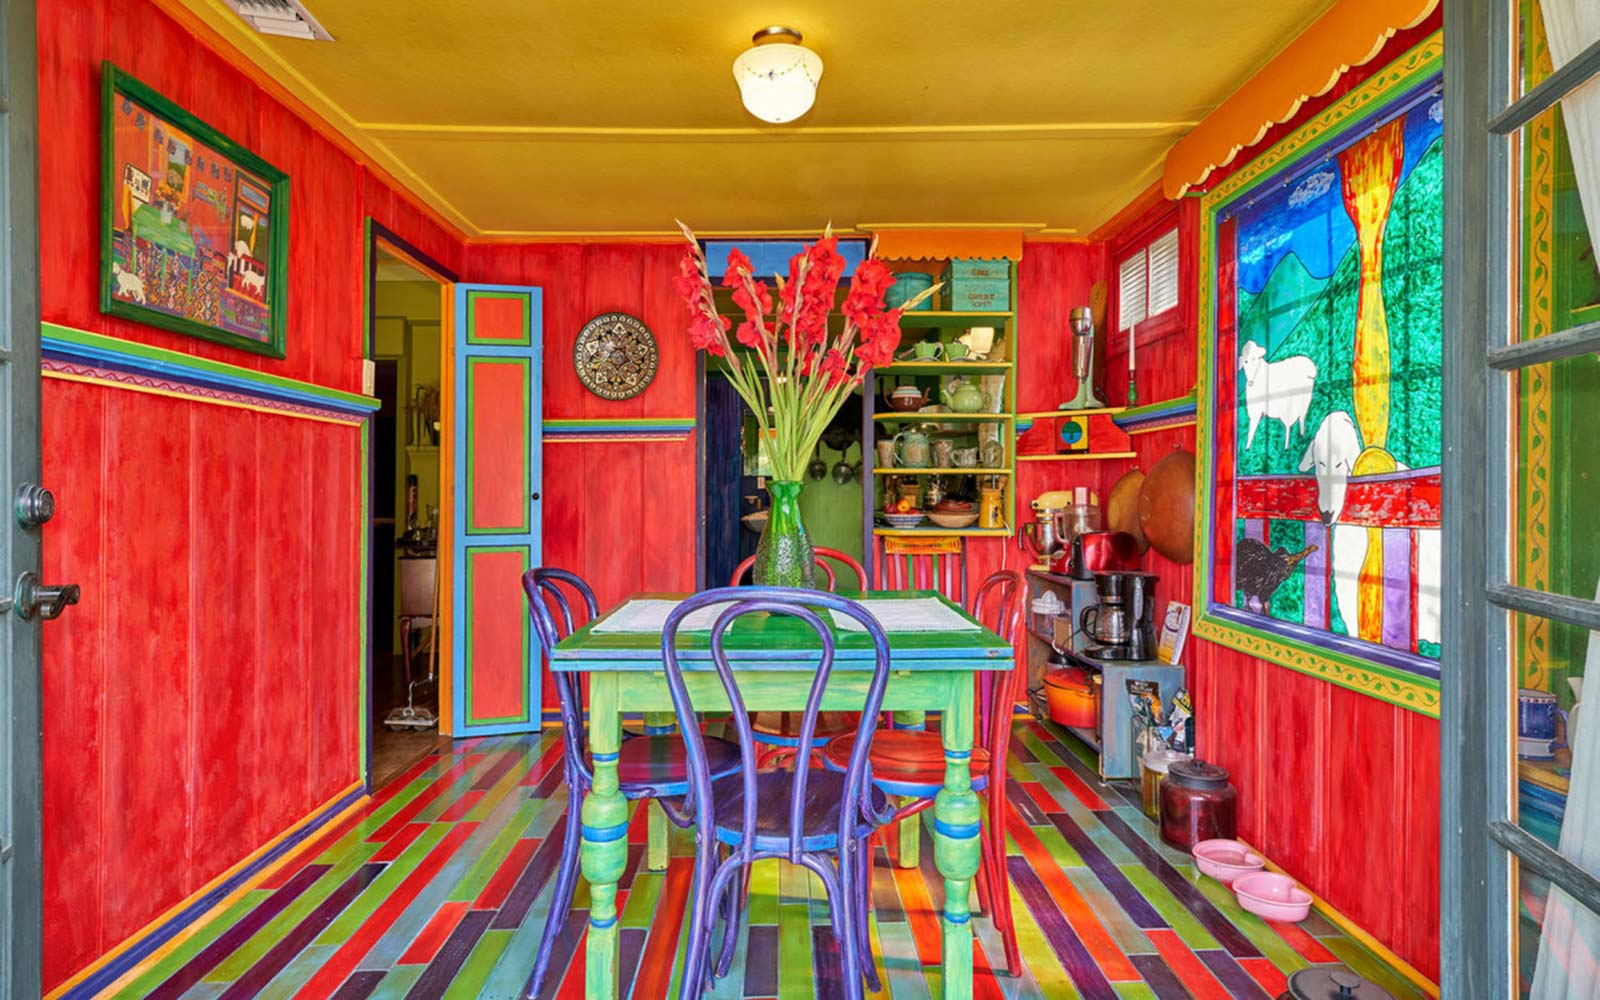 Palm Springs' Most Colorful Cottage Is for Sale, Just in Time for Coachella